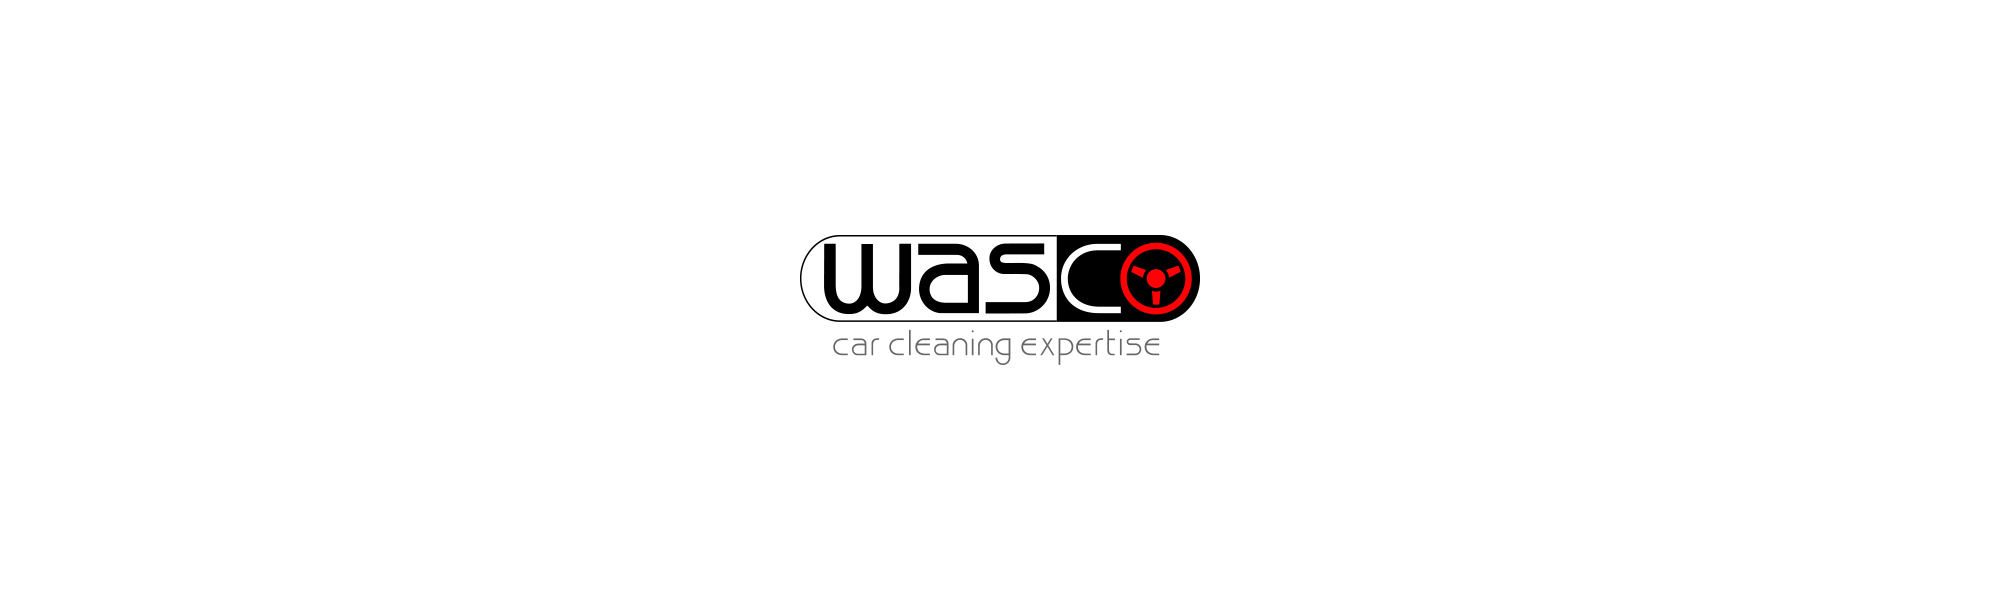 wasco-LOGO_OLD2